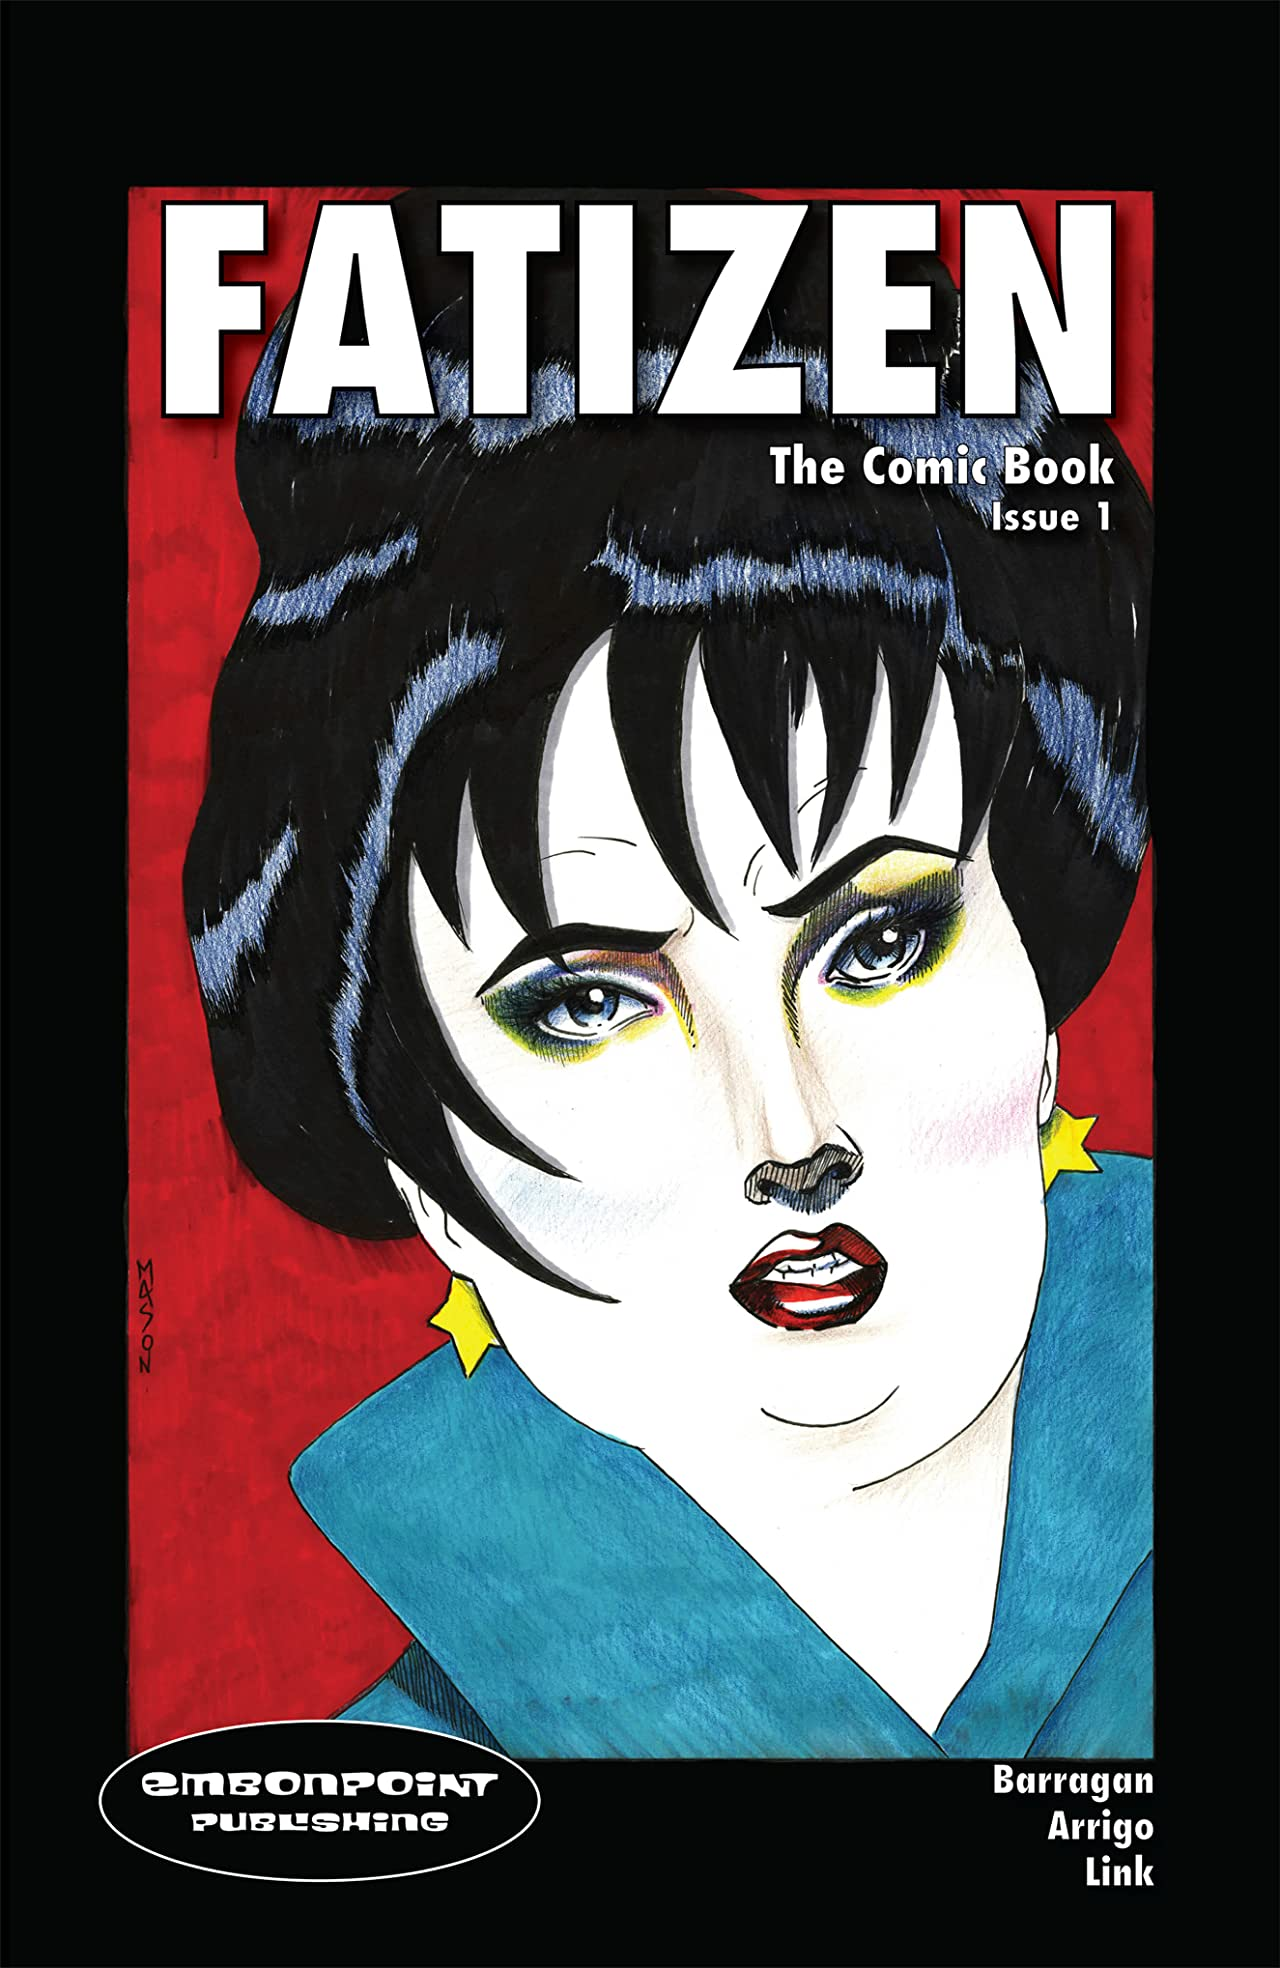 Fatizen: The Graphic Novel #1